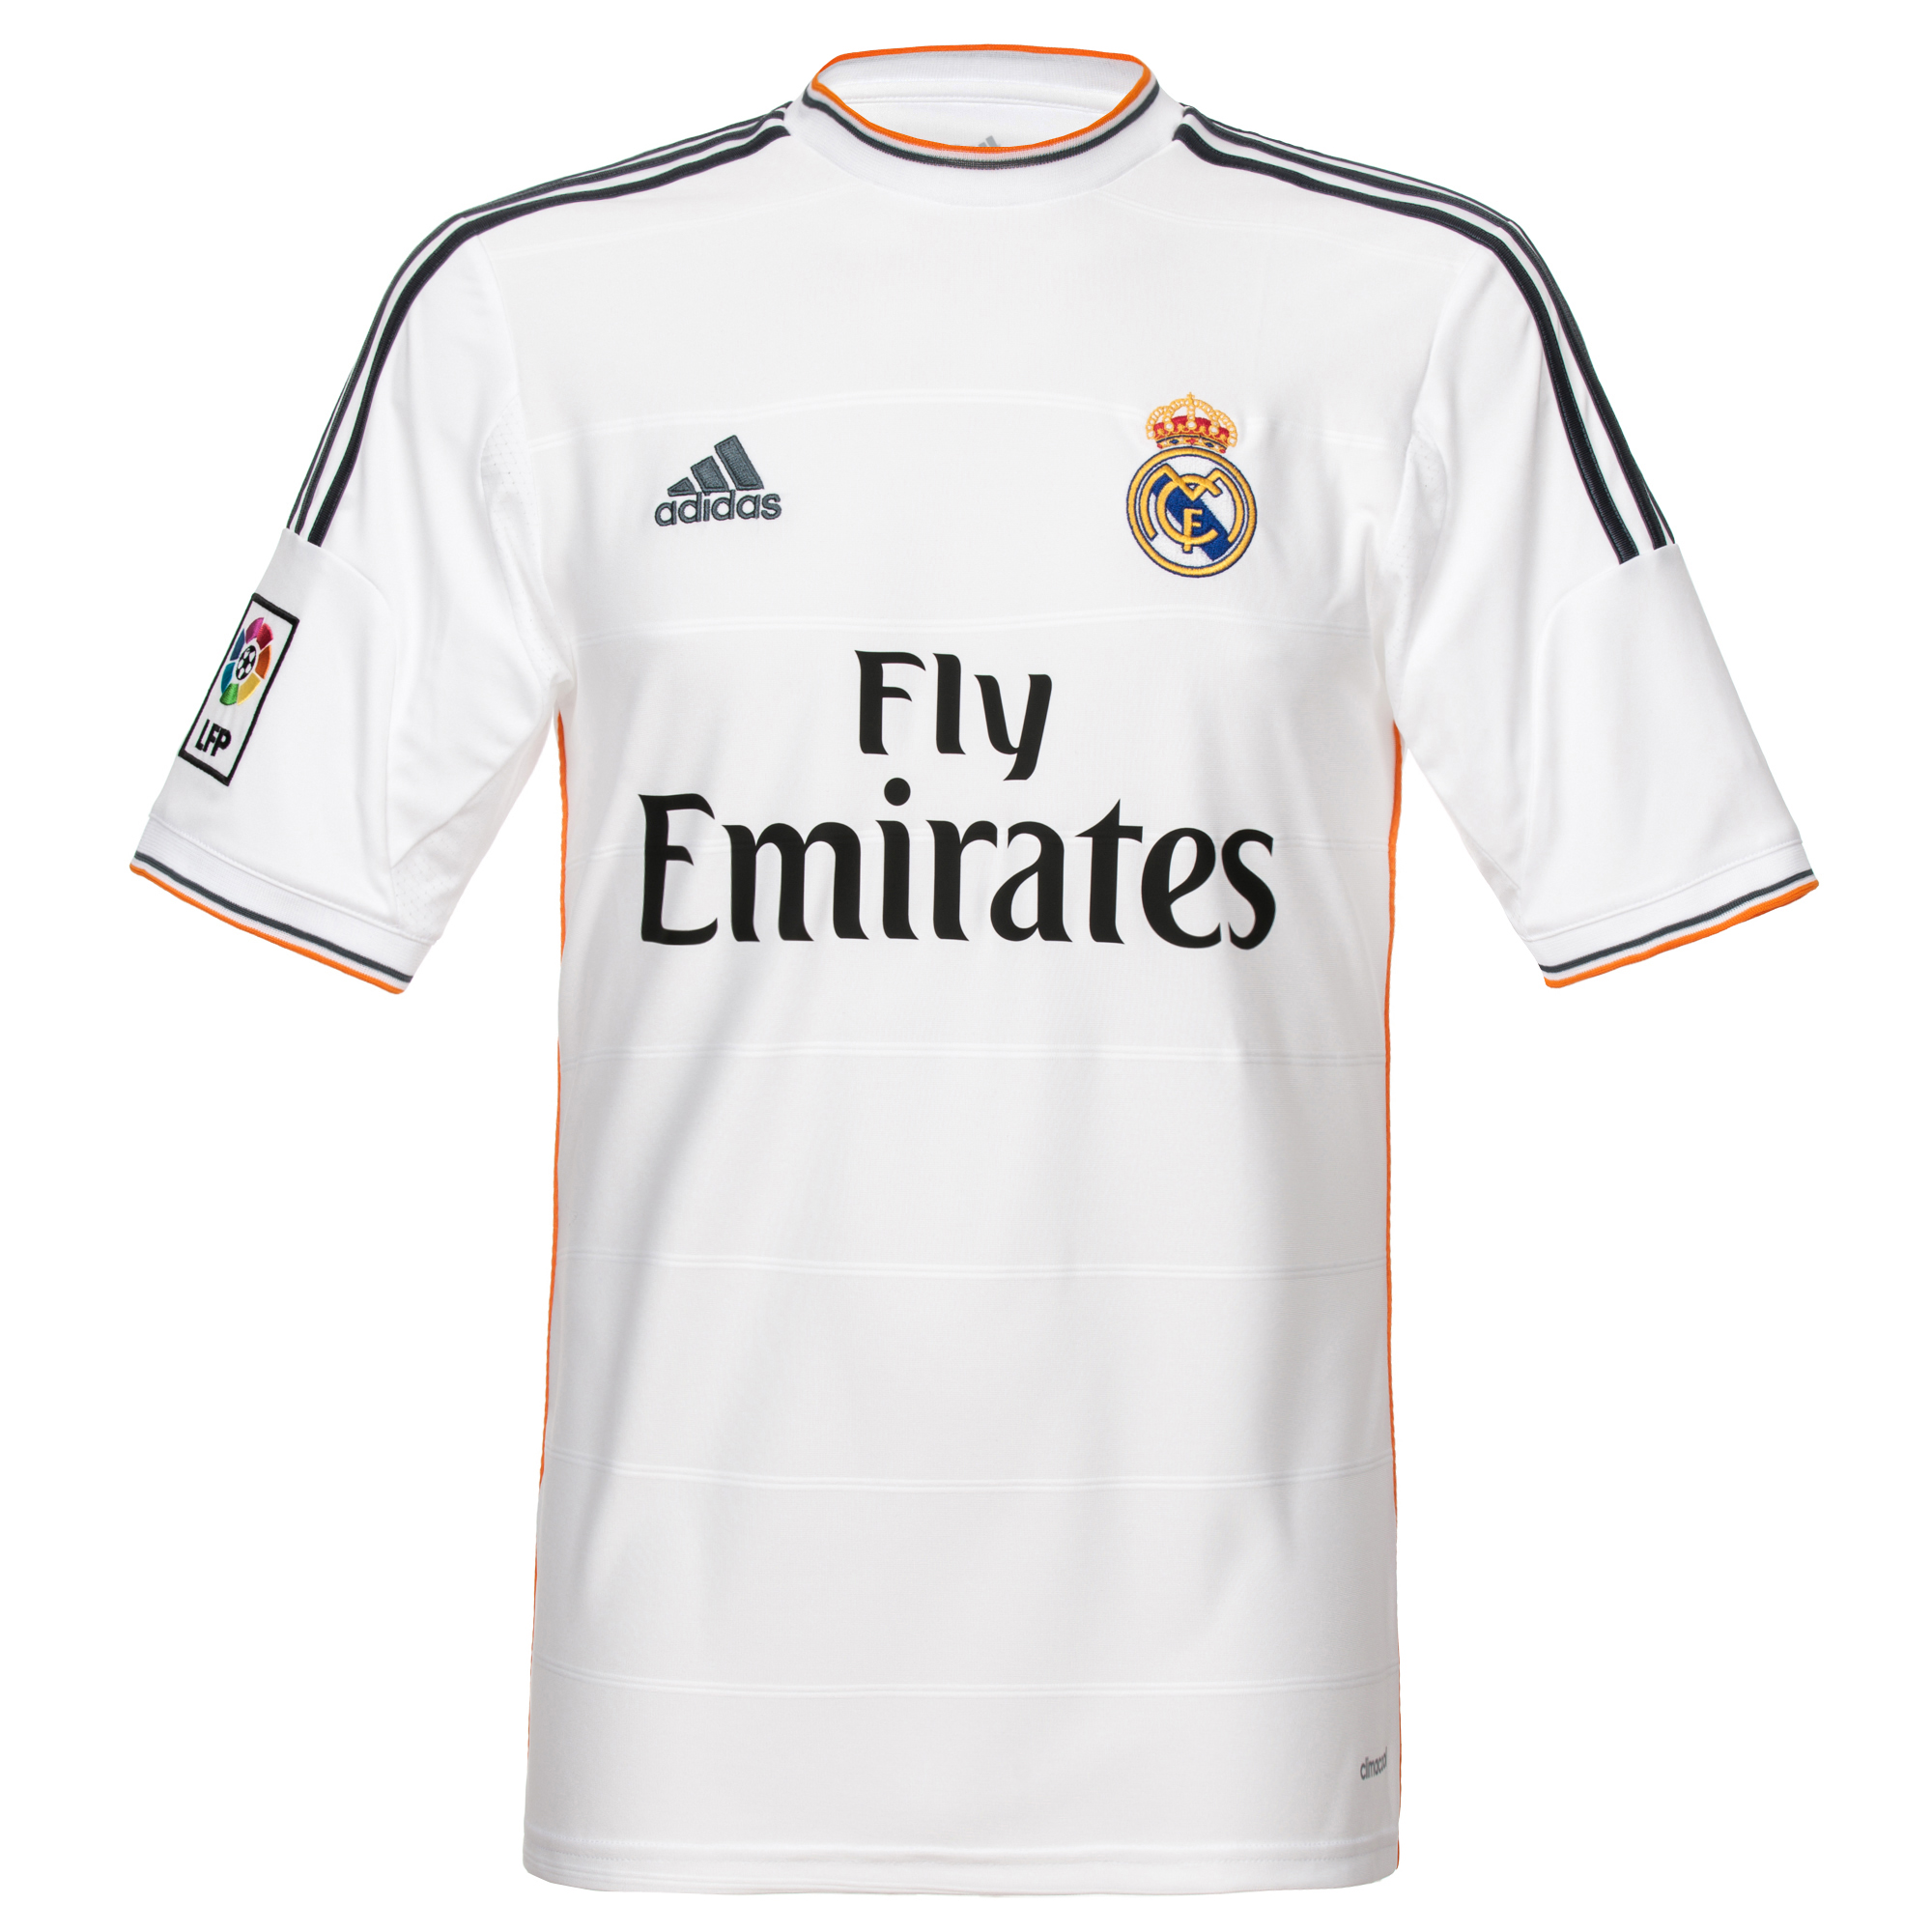 real madrid trikot home heim adidas z29256 herren ebay. Black Bedroom Furniture Sets. Home Design Ideas